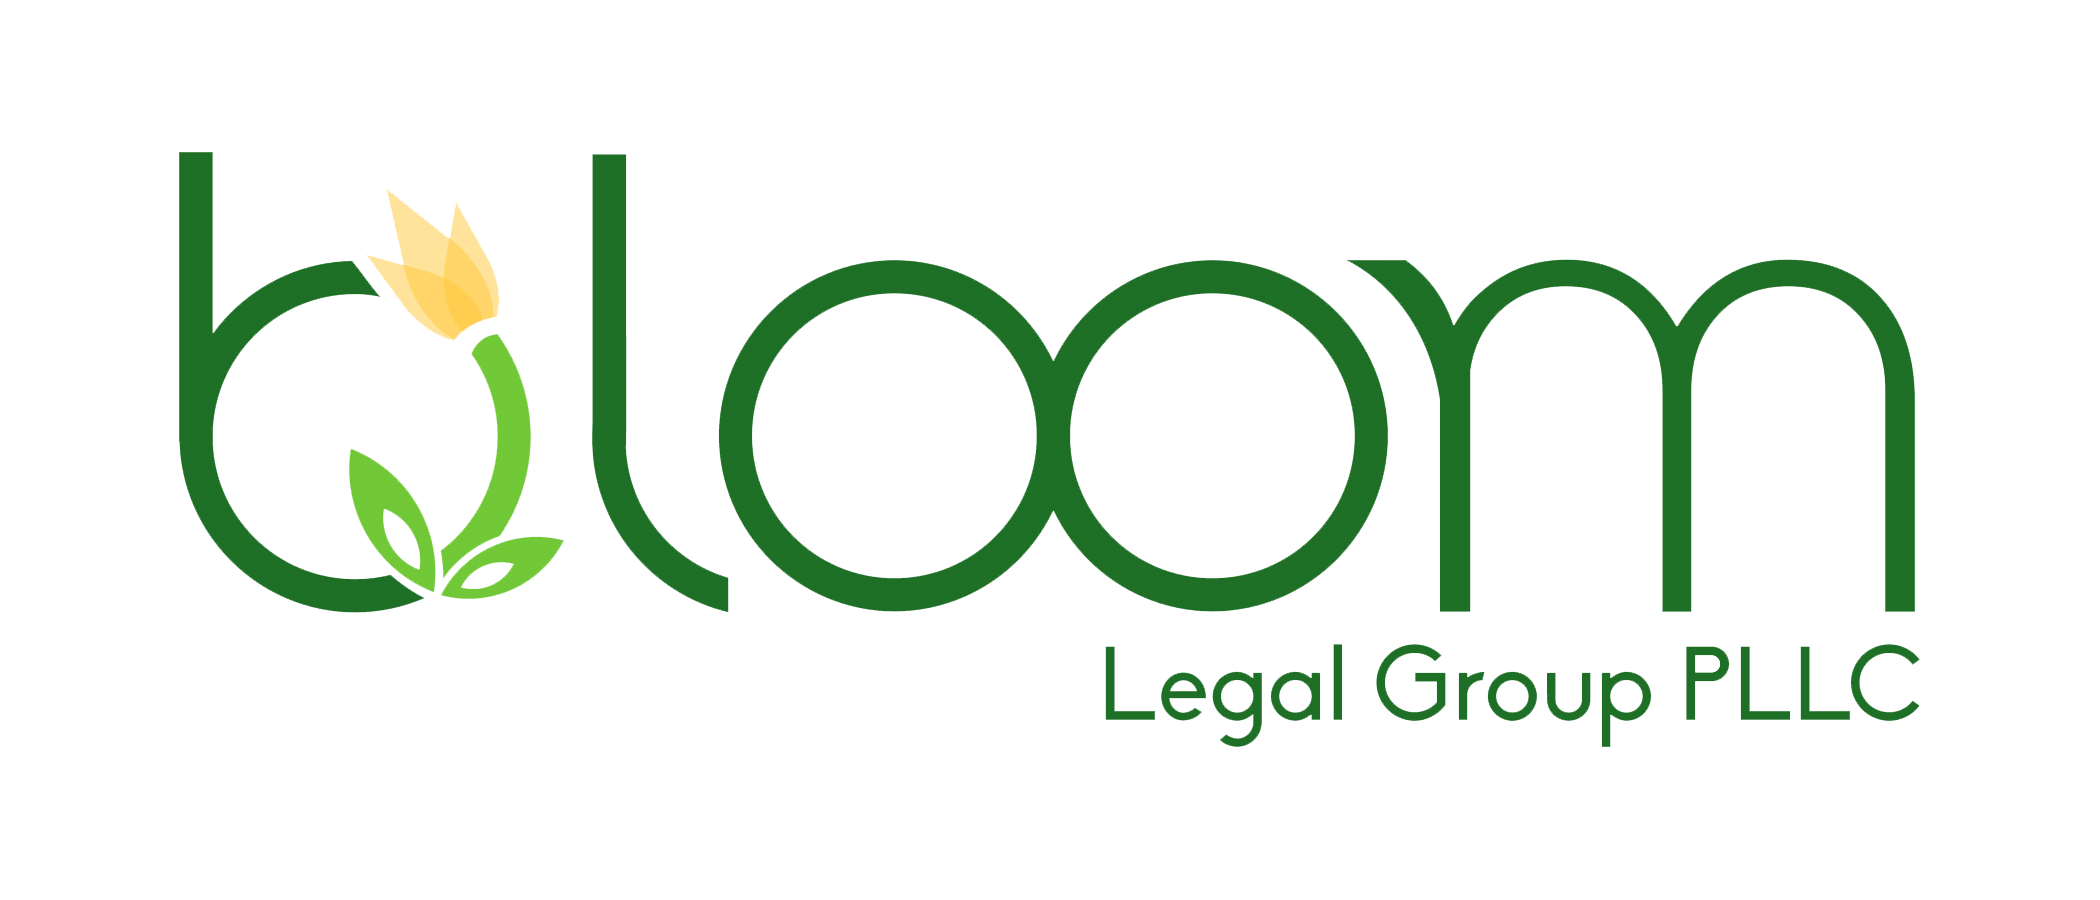 Bloom Legal Group PLLC